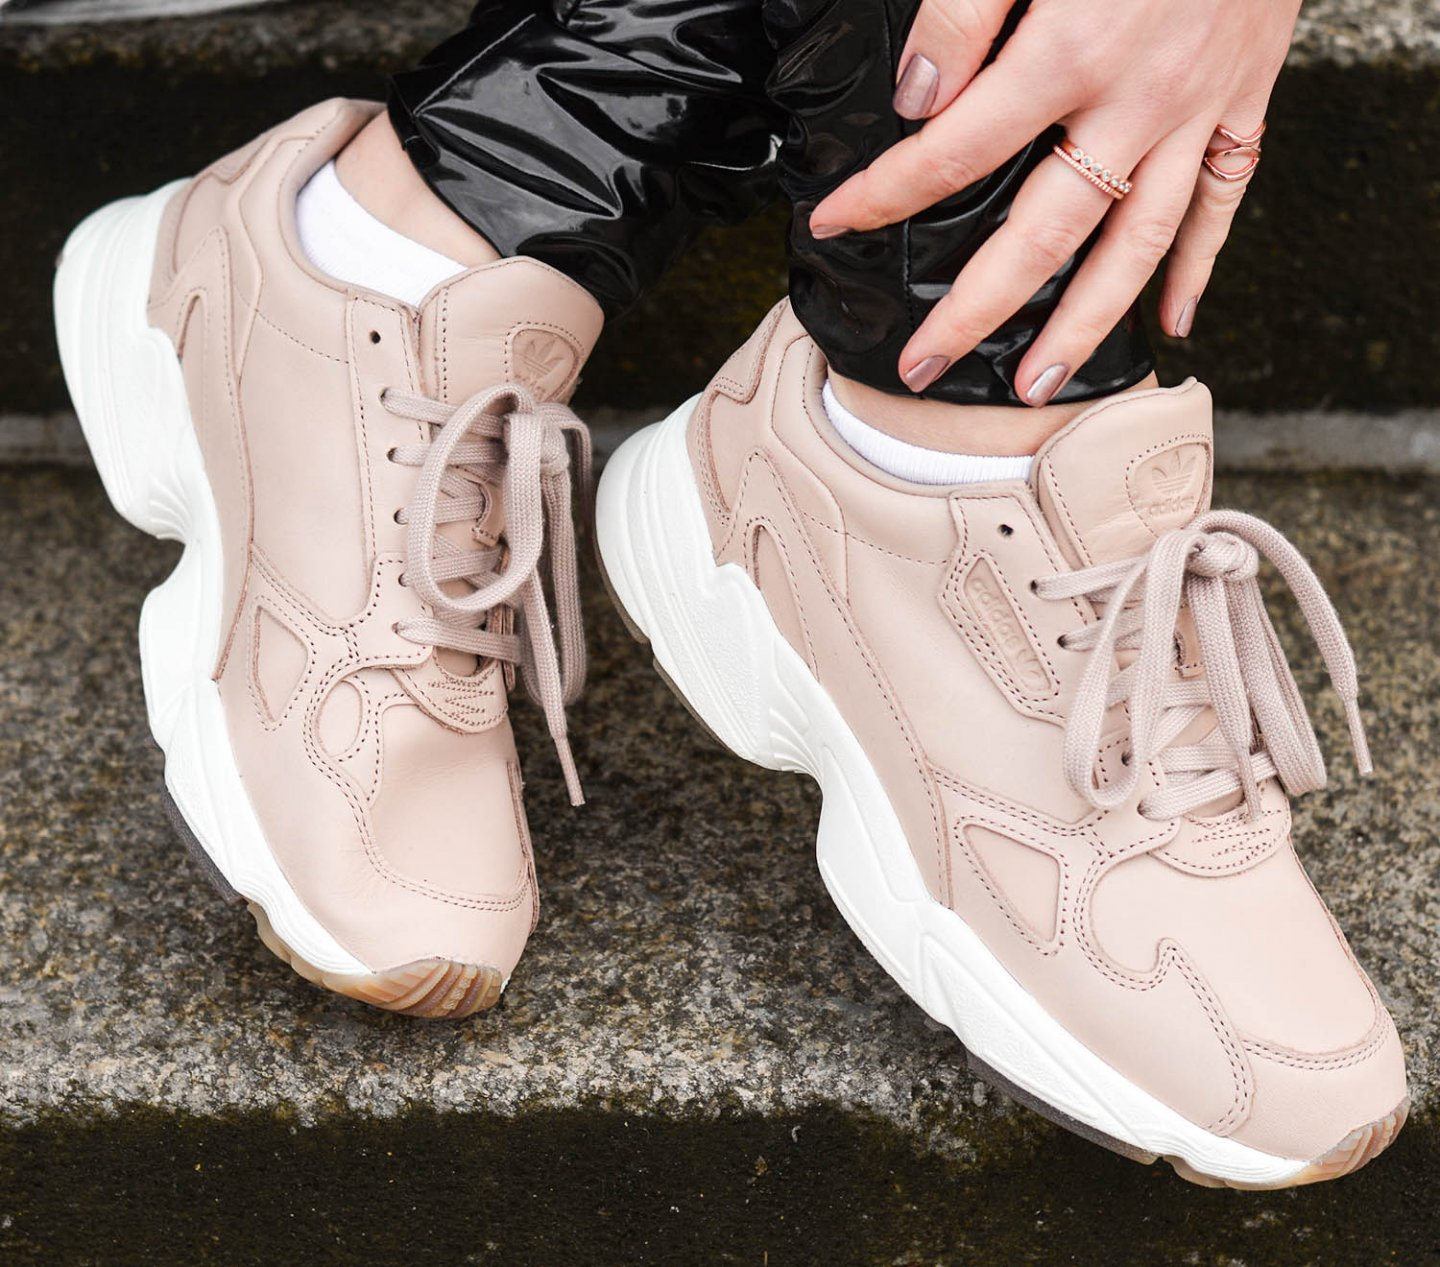 Adidas-Falcon-Ash-Pearl-Chunky-Sneaker-XL-Strick-Vinyl-Leggings-Kationette-Fashionblog-Germany-Outfit